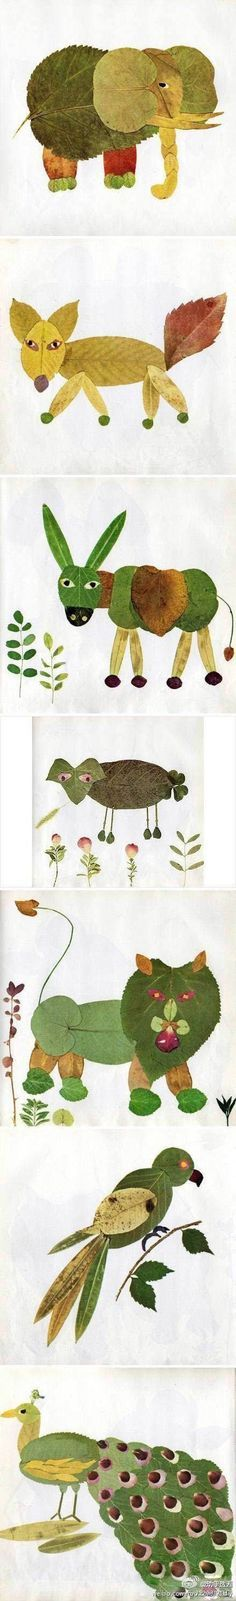 A list of wonderful Fall art activities which include elements such as color, texture, line and shape. These Fall art ideas are unique and fun! Fall Art Projects, Projects For Kids, Diy For Kids, Craft Projects, Craft Ideas, Fun Ideas, Kids Crafts, Fall Crafts, Leaf Crafts